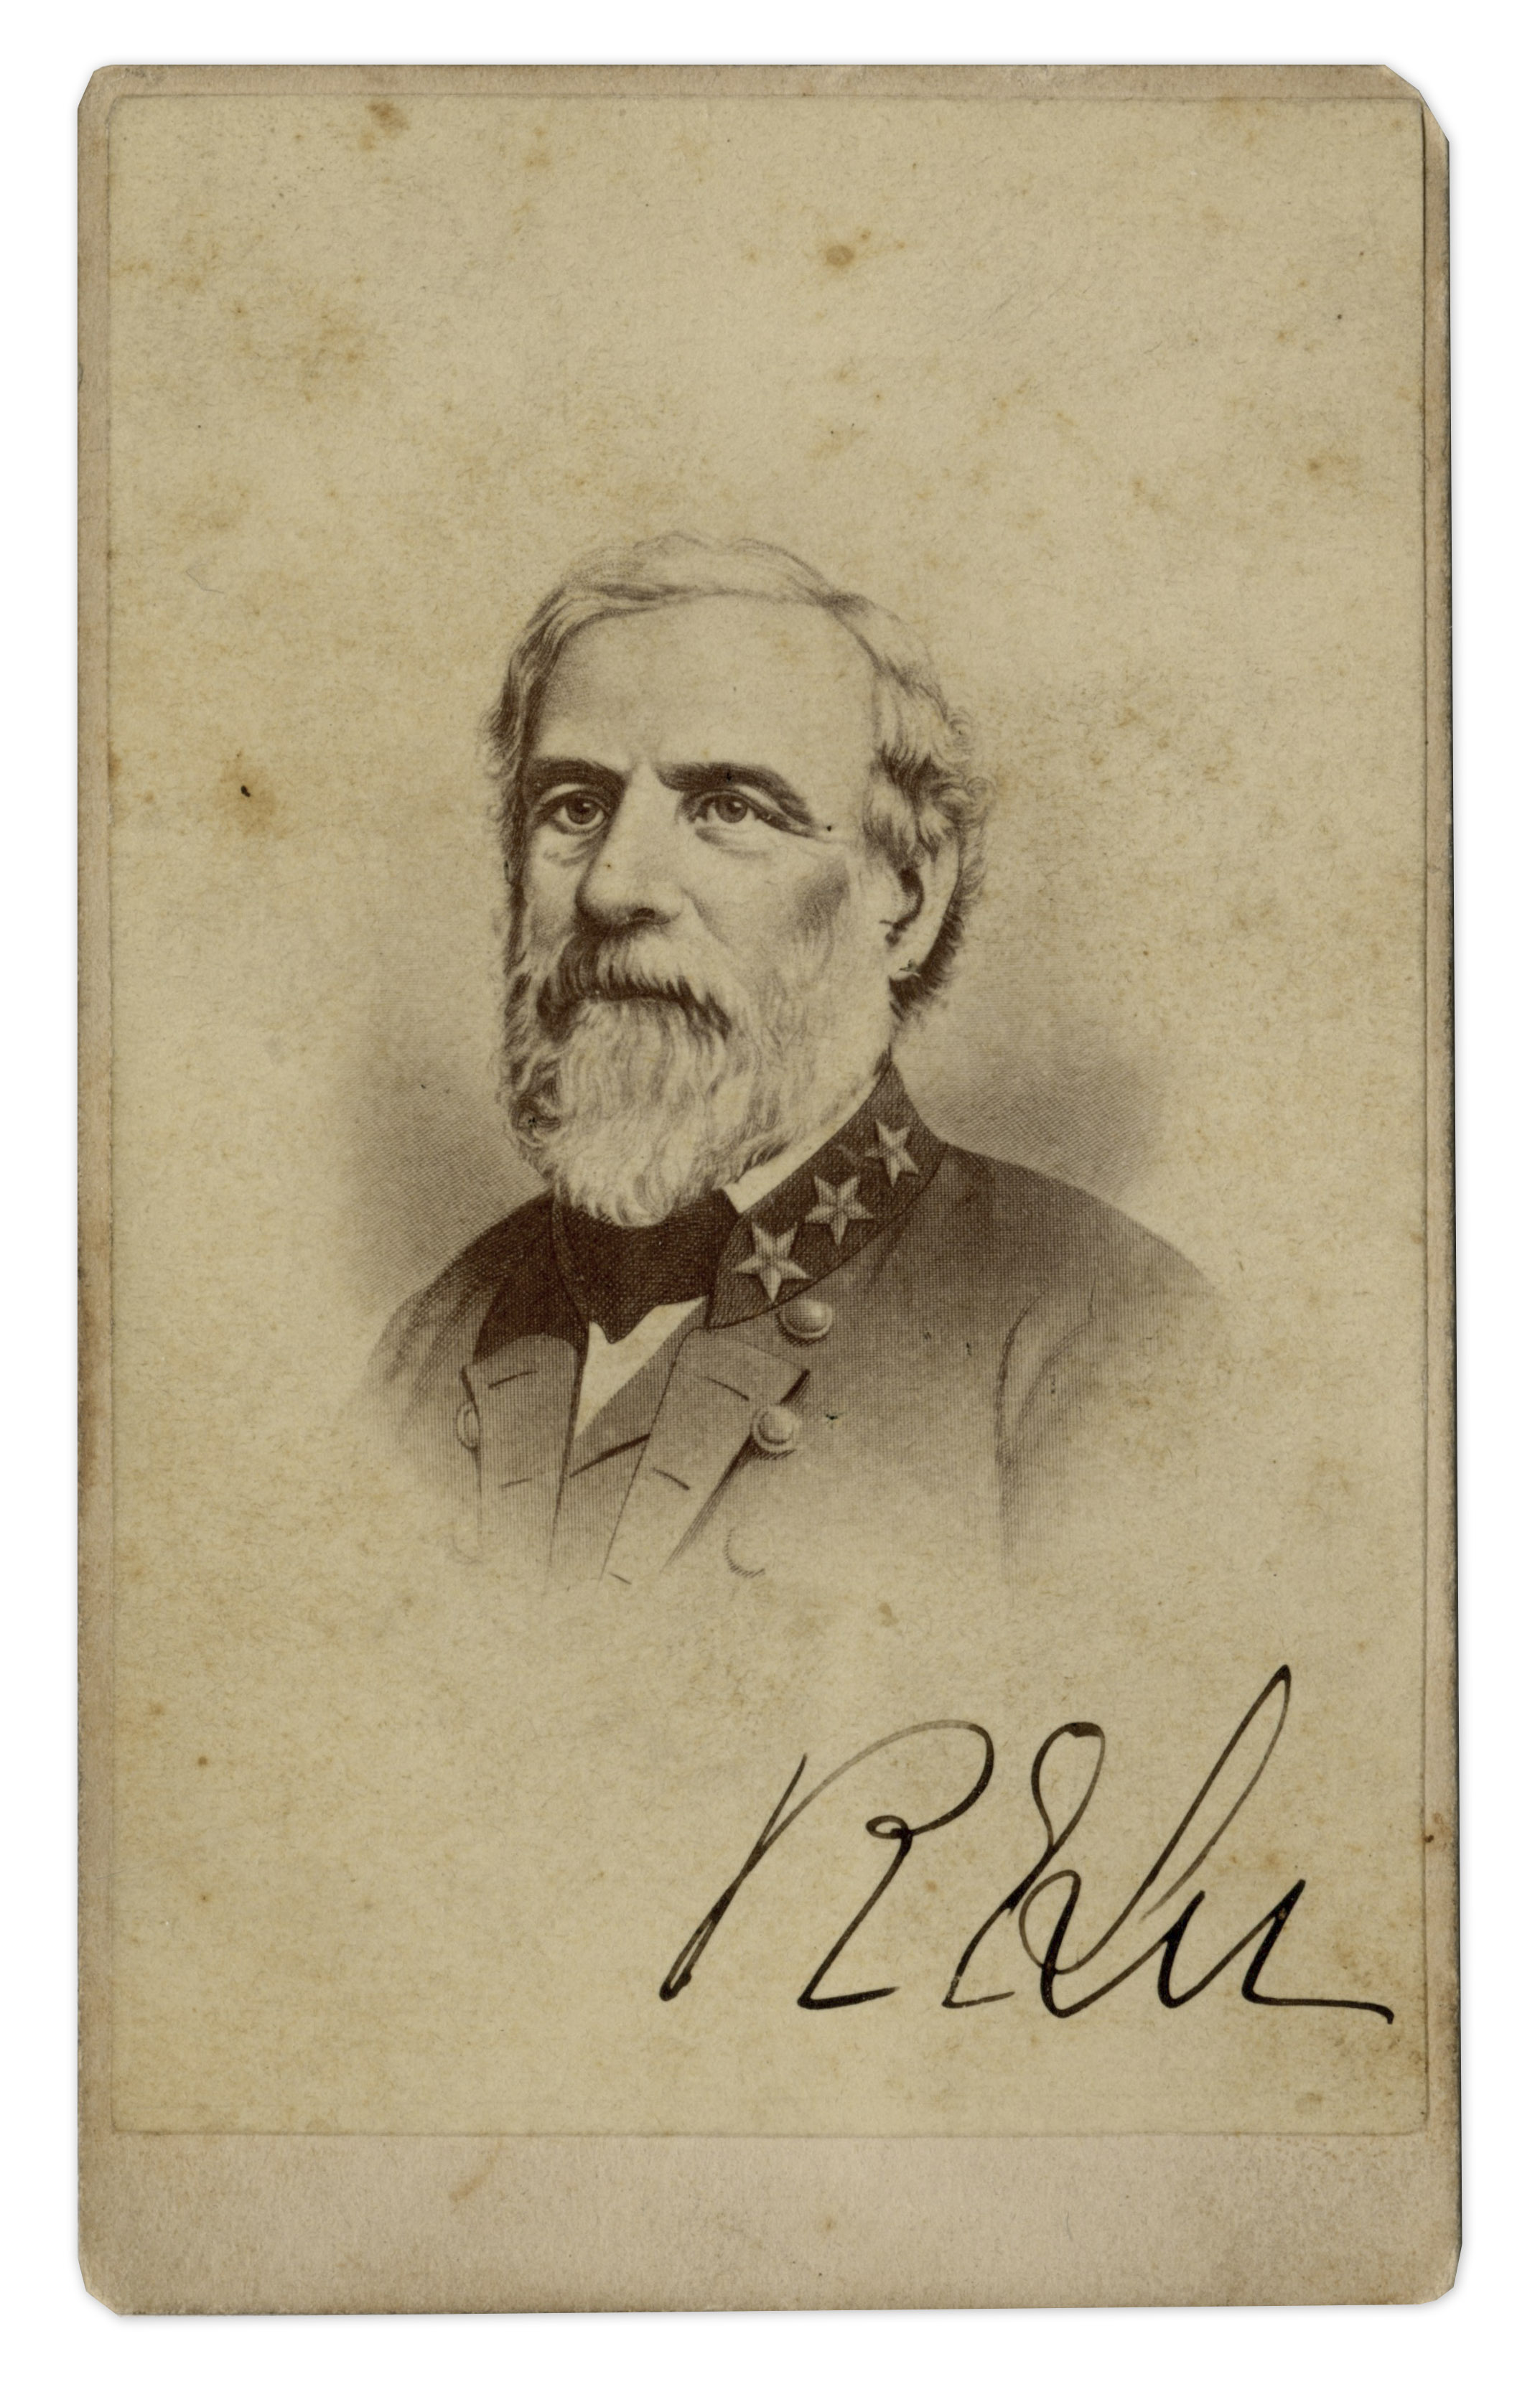 Robert E. Lee autograph General Robert E. Lee Signed CDV